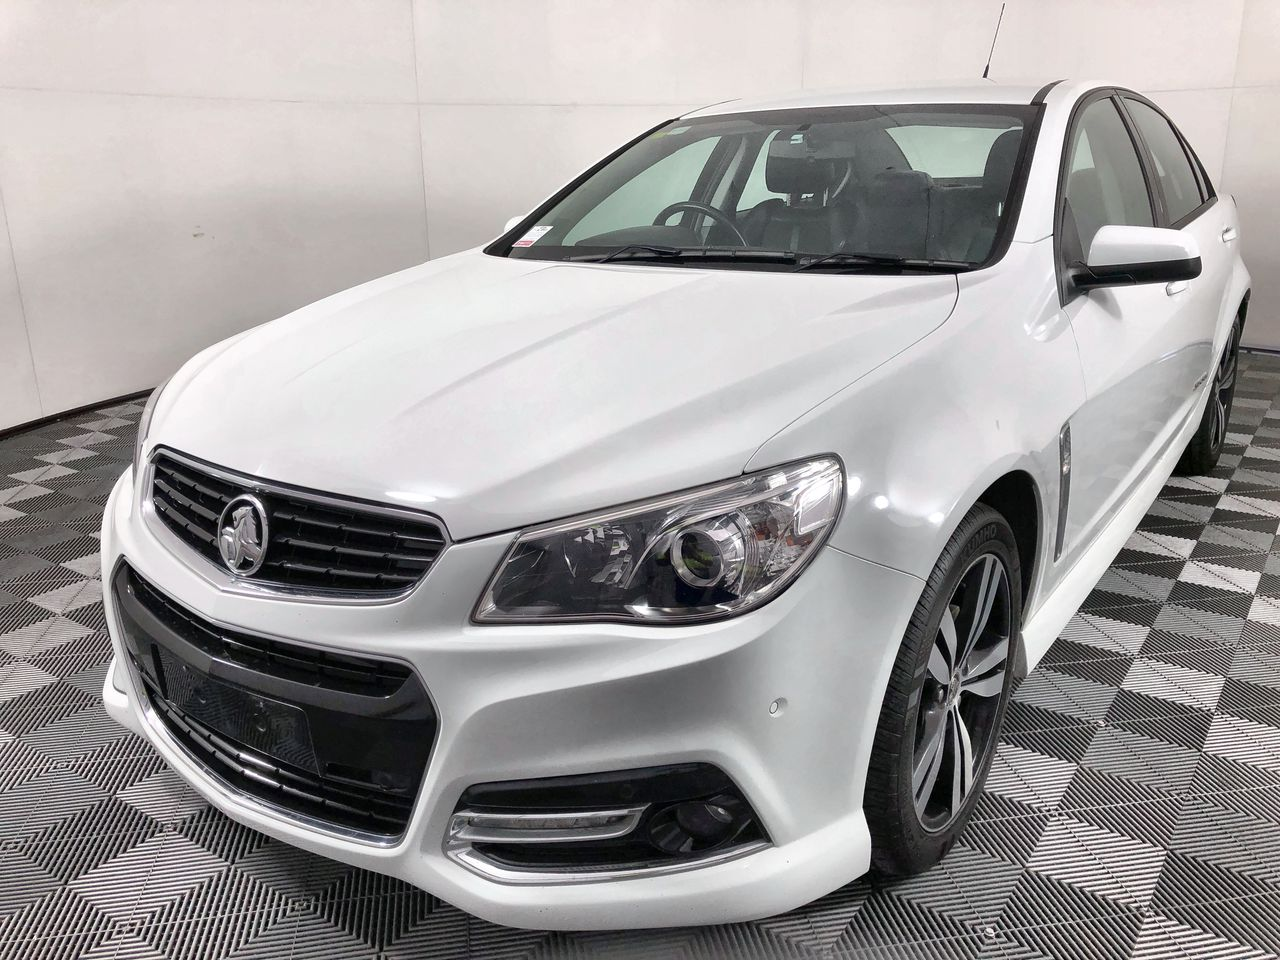 2015 Holden Commodore SV6 Storm Special ED VF Automatic Sedan